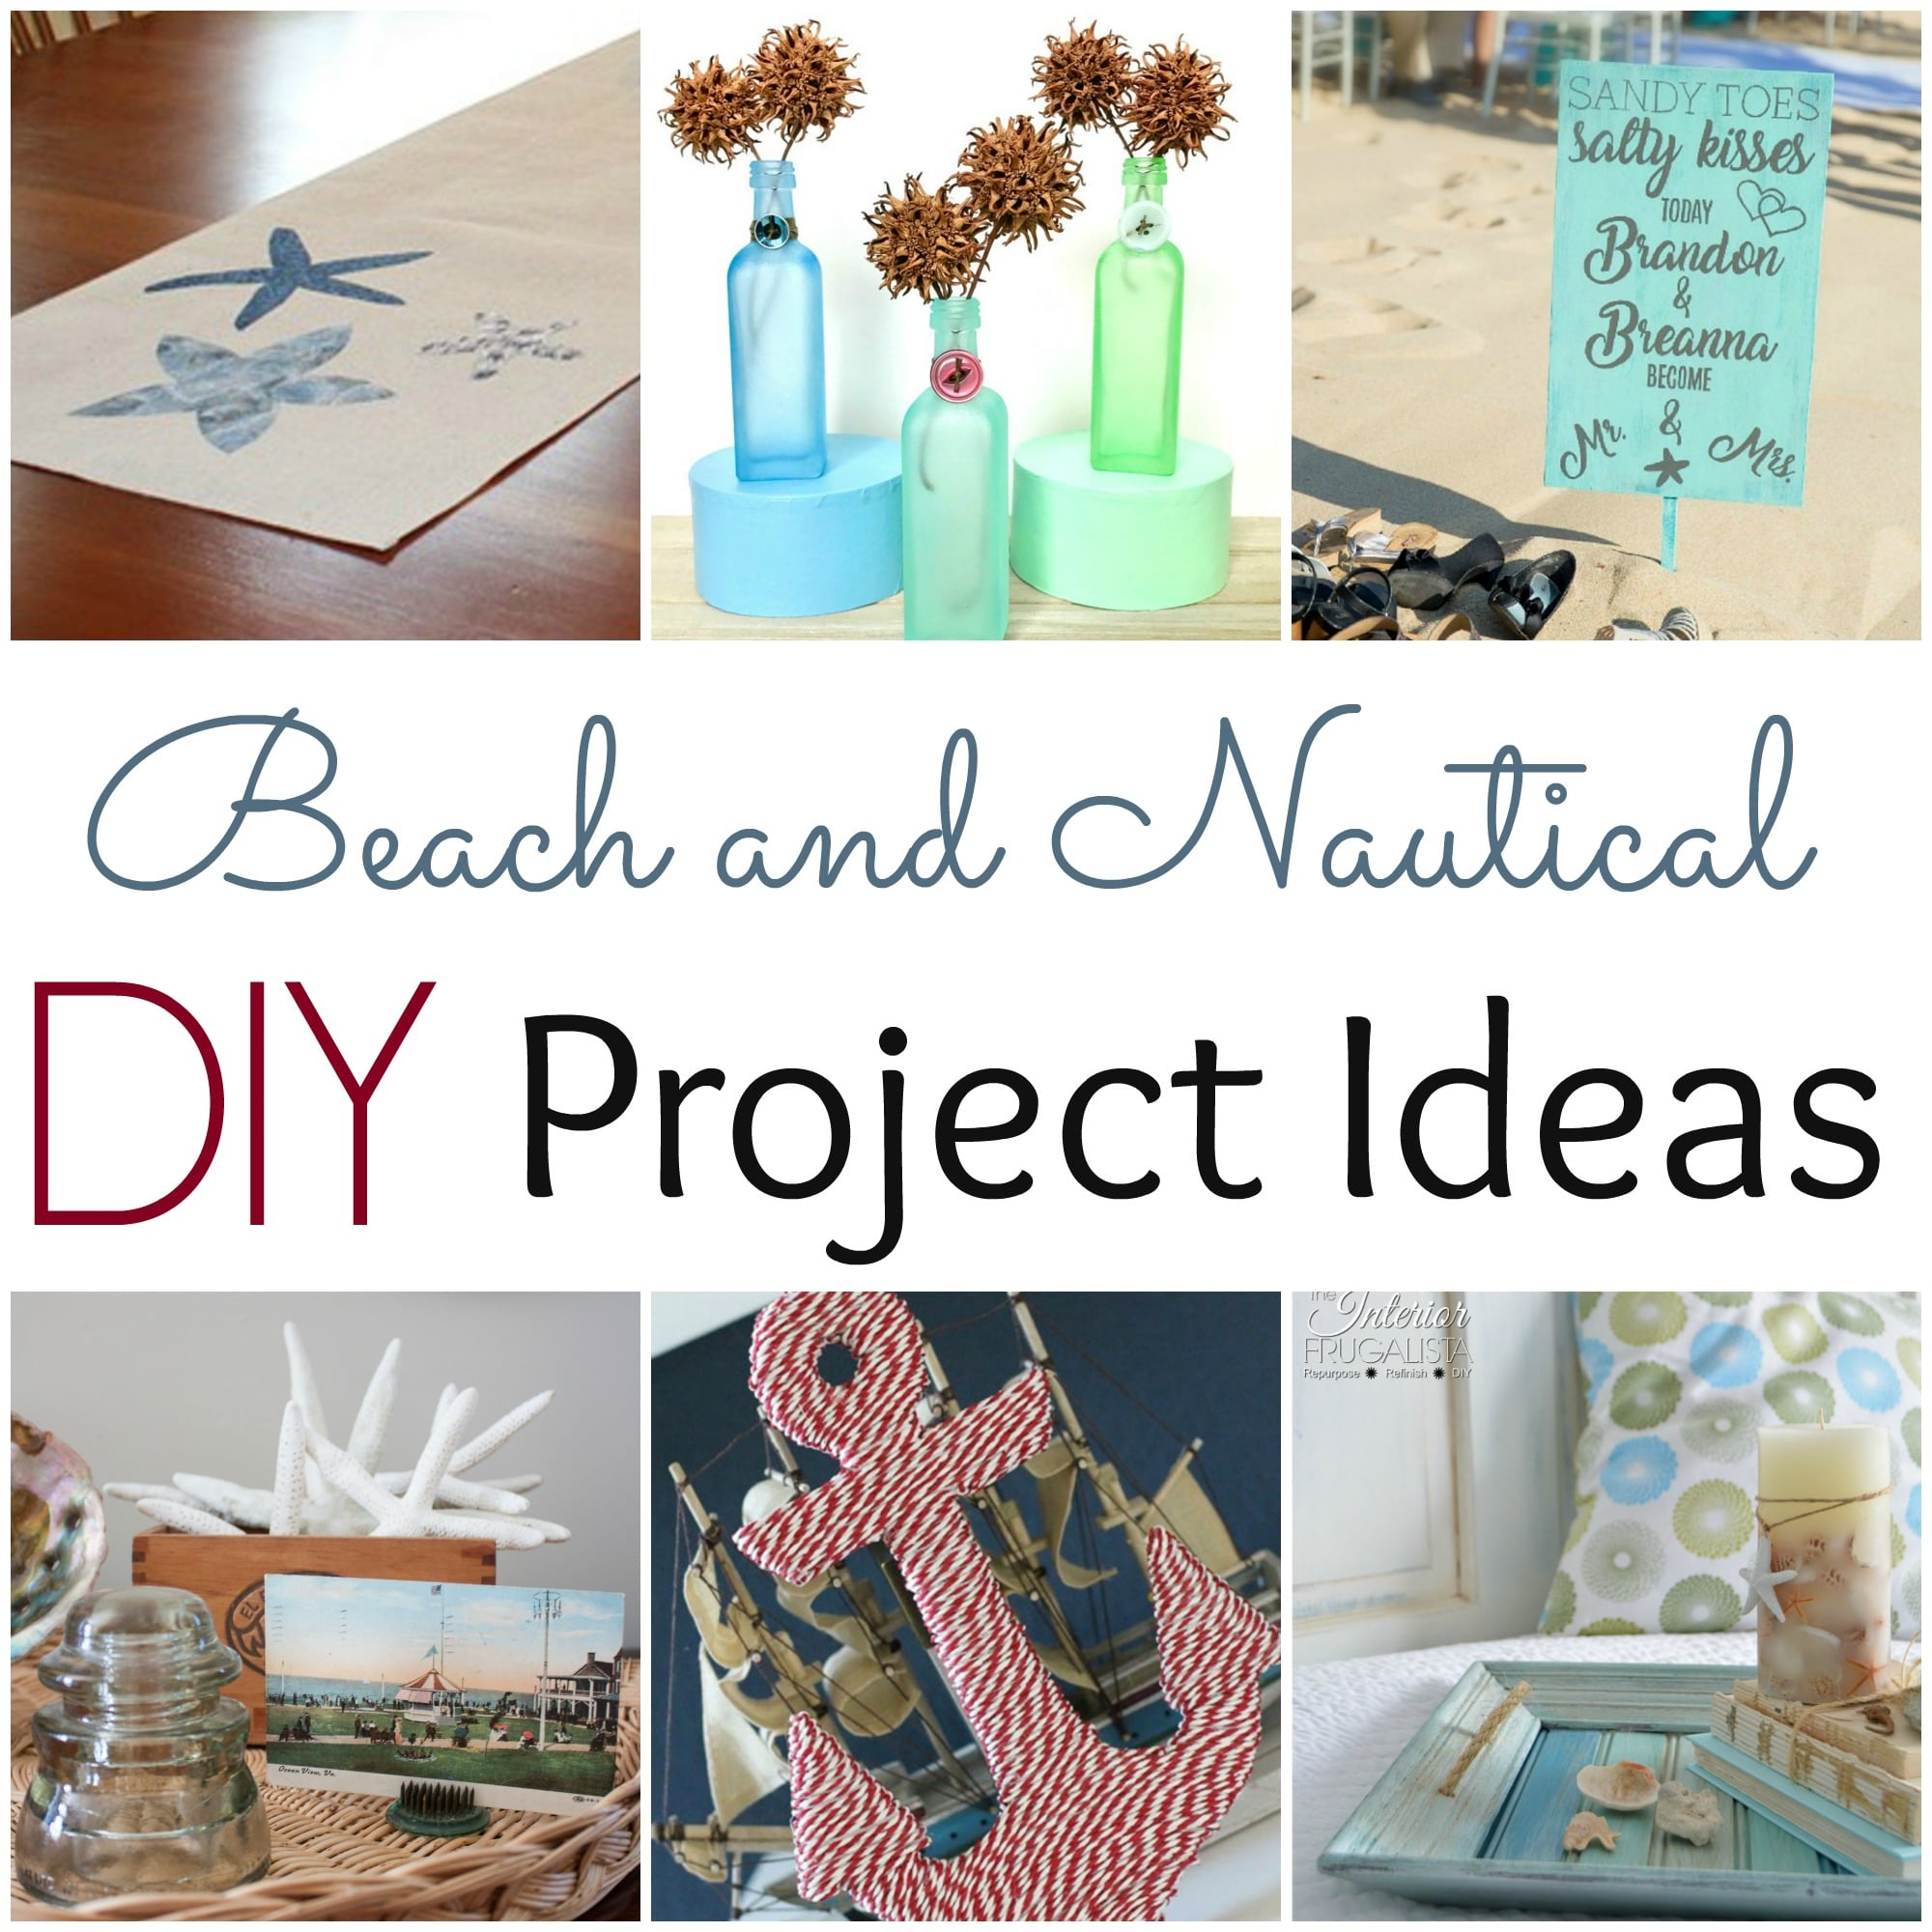 Beach and Nautical DIY Project Ideas